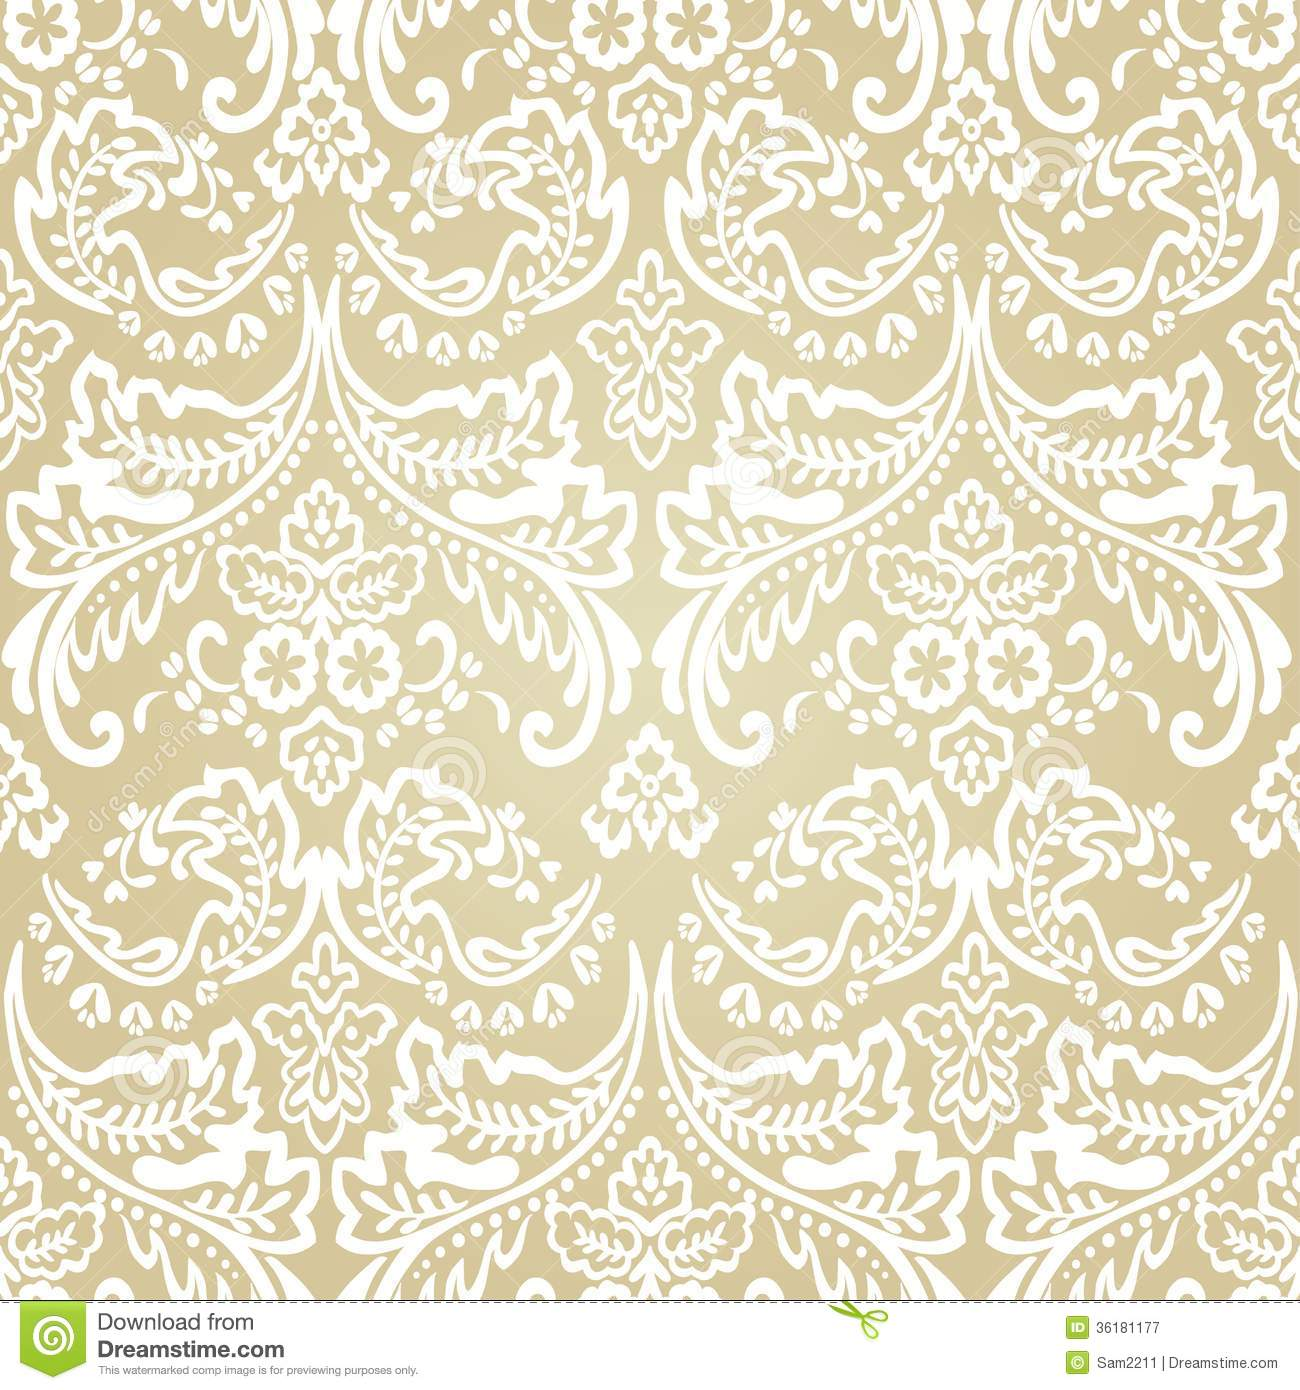 Damask Vintage Floral Seamless Pattern Background Stock